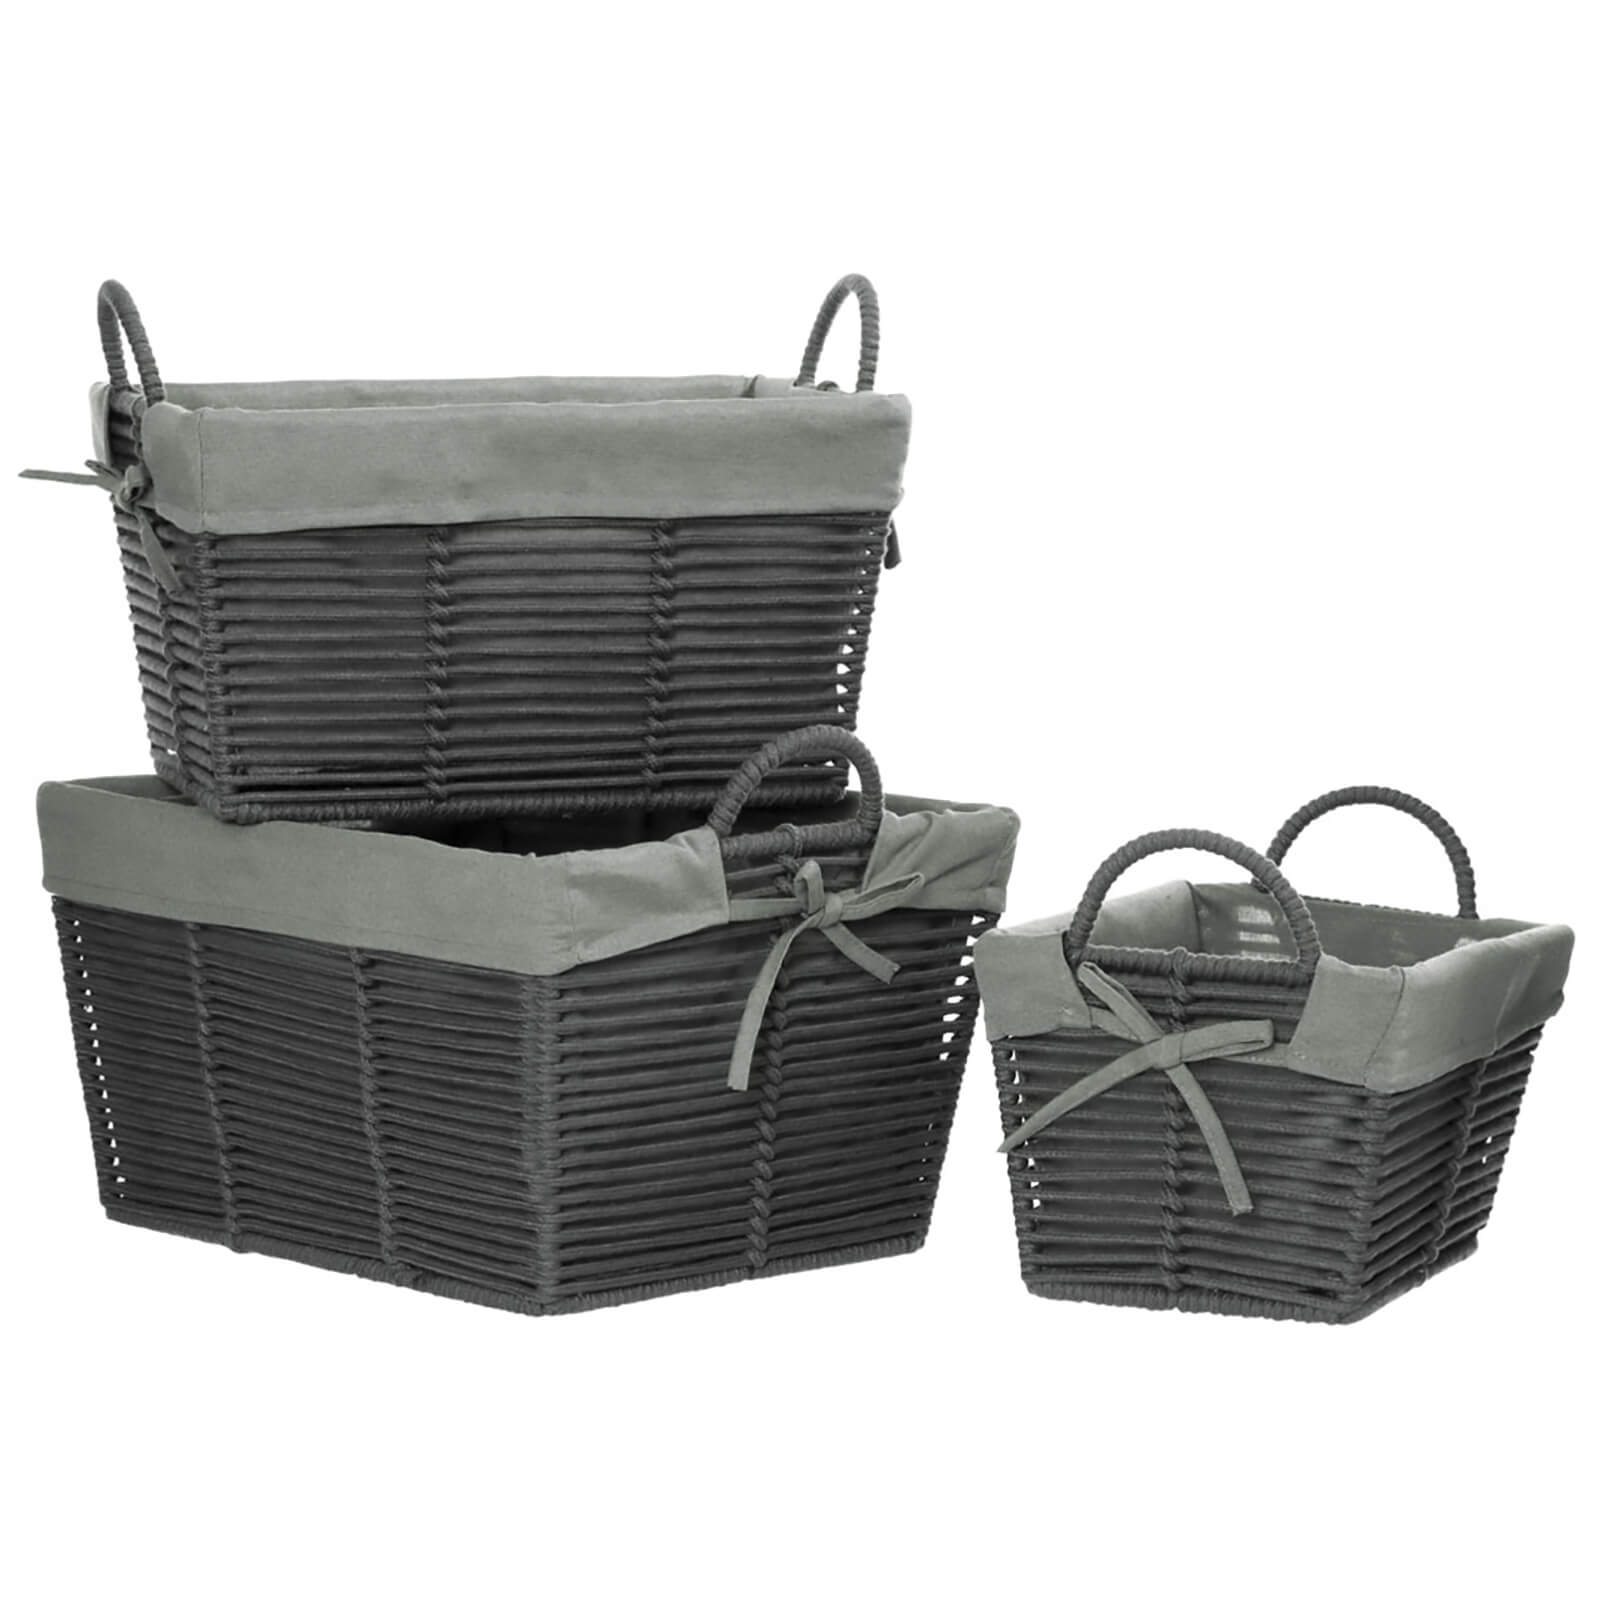 Fifty Five South Lida Rope Metal Wire Storage Baskets - Grey (Set of 3)